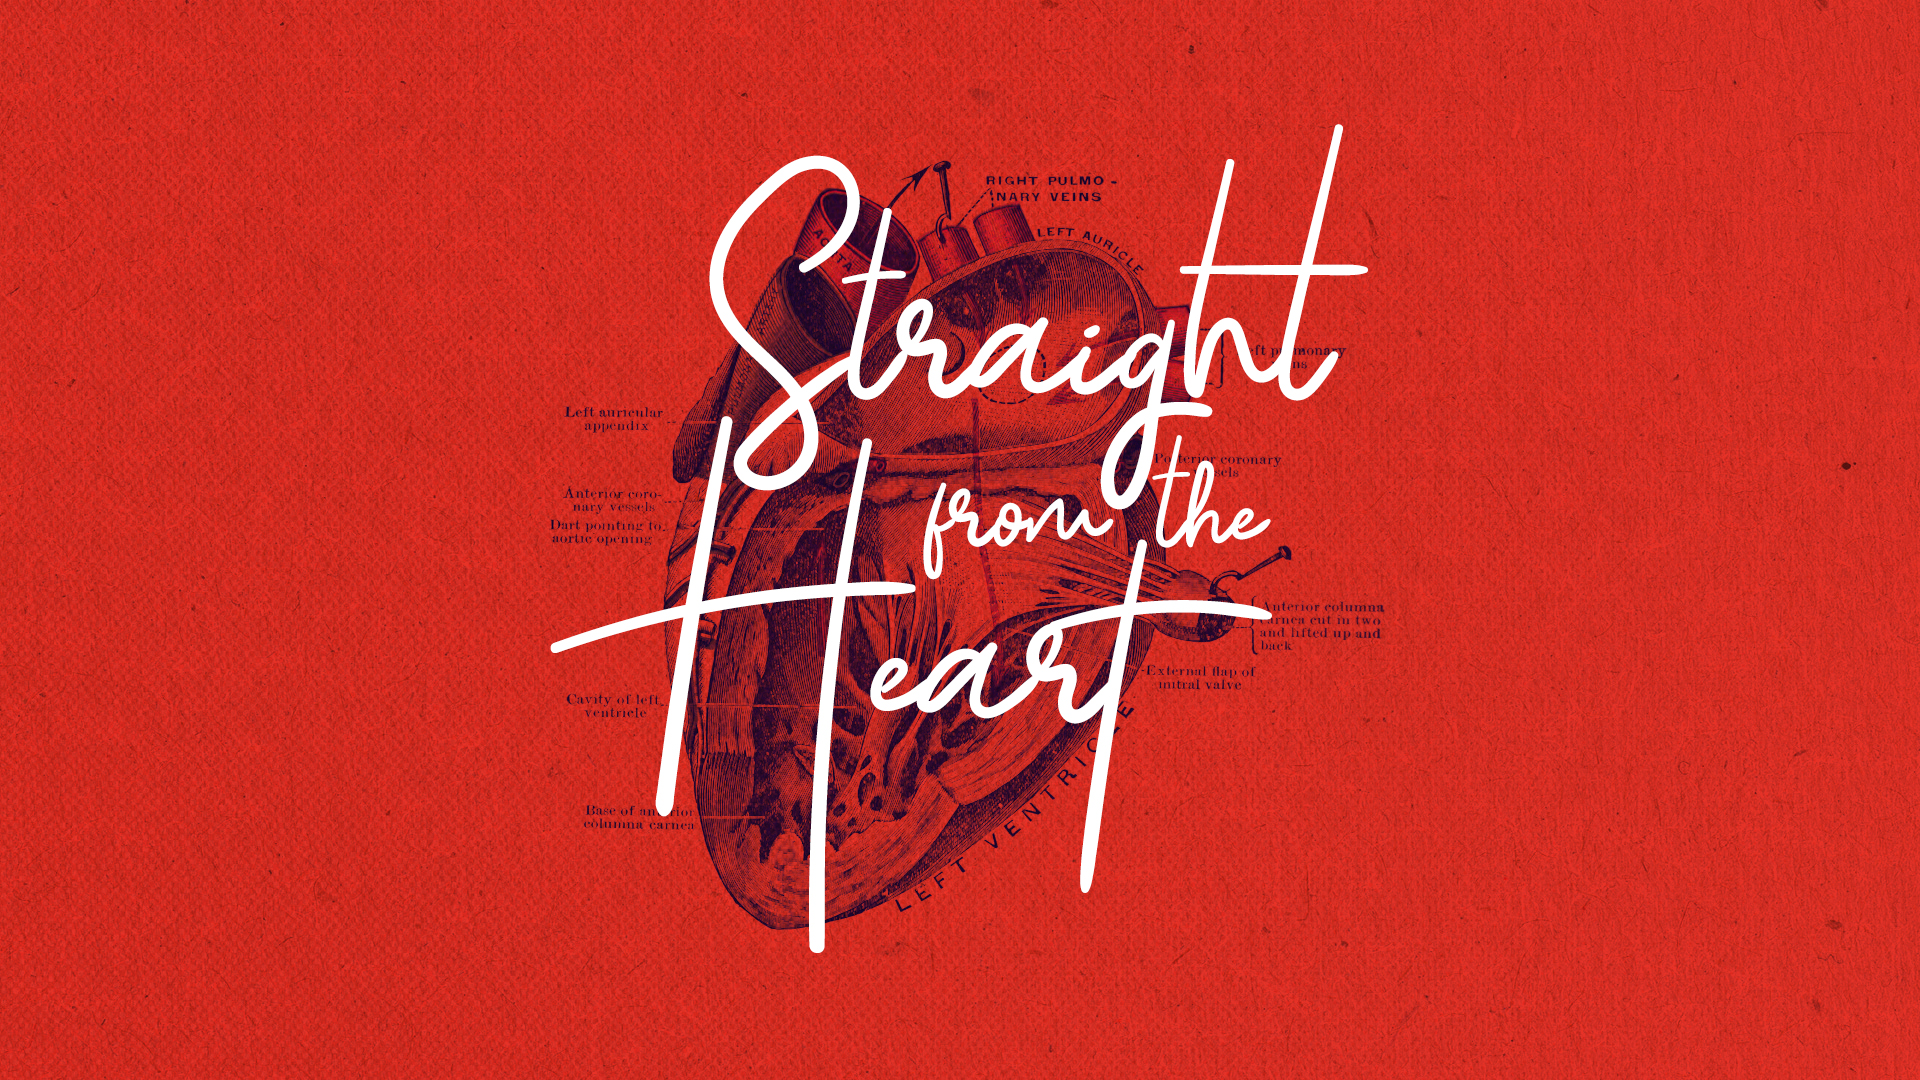 May 2019 - Straight from the Heart